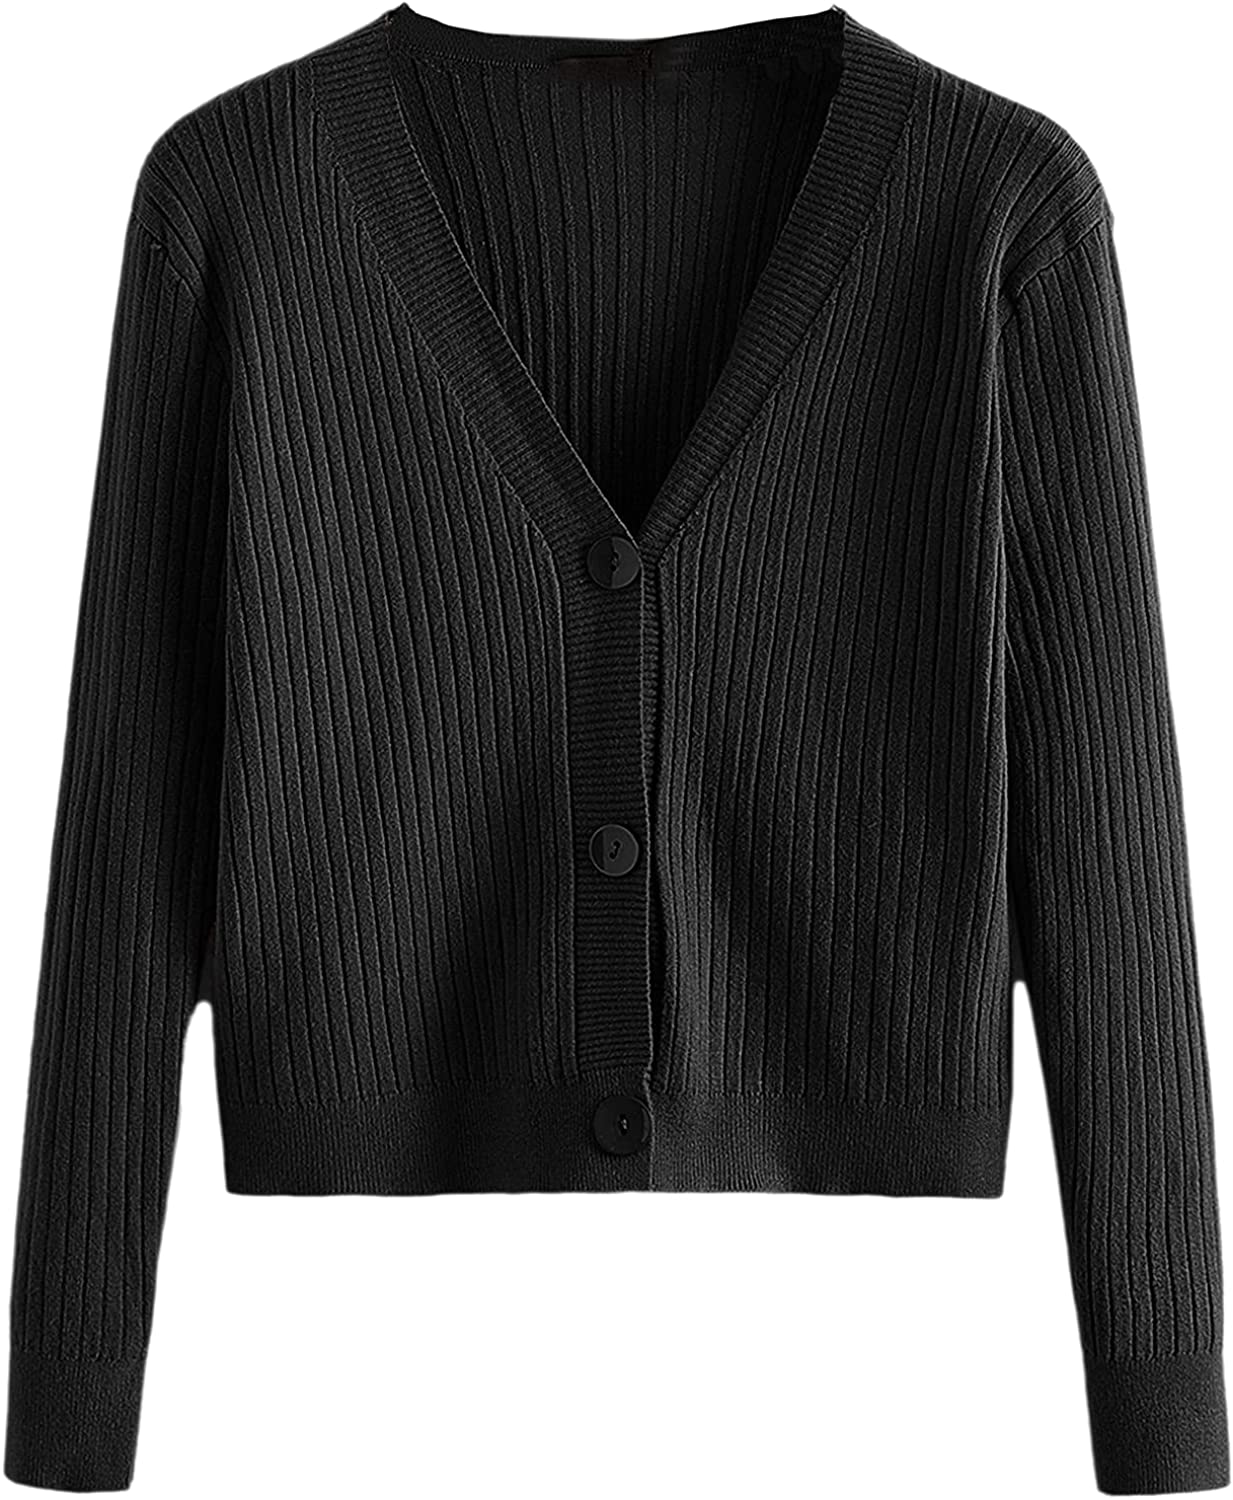 MakeMeChic Women's Casual Rib-Knit V Neck Button Front Crop Sweater Cardigan